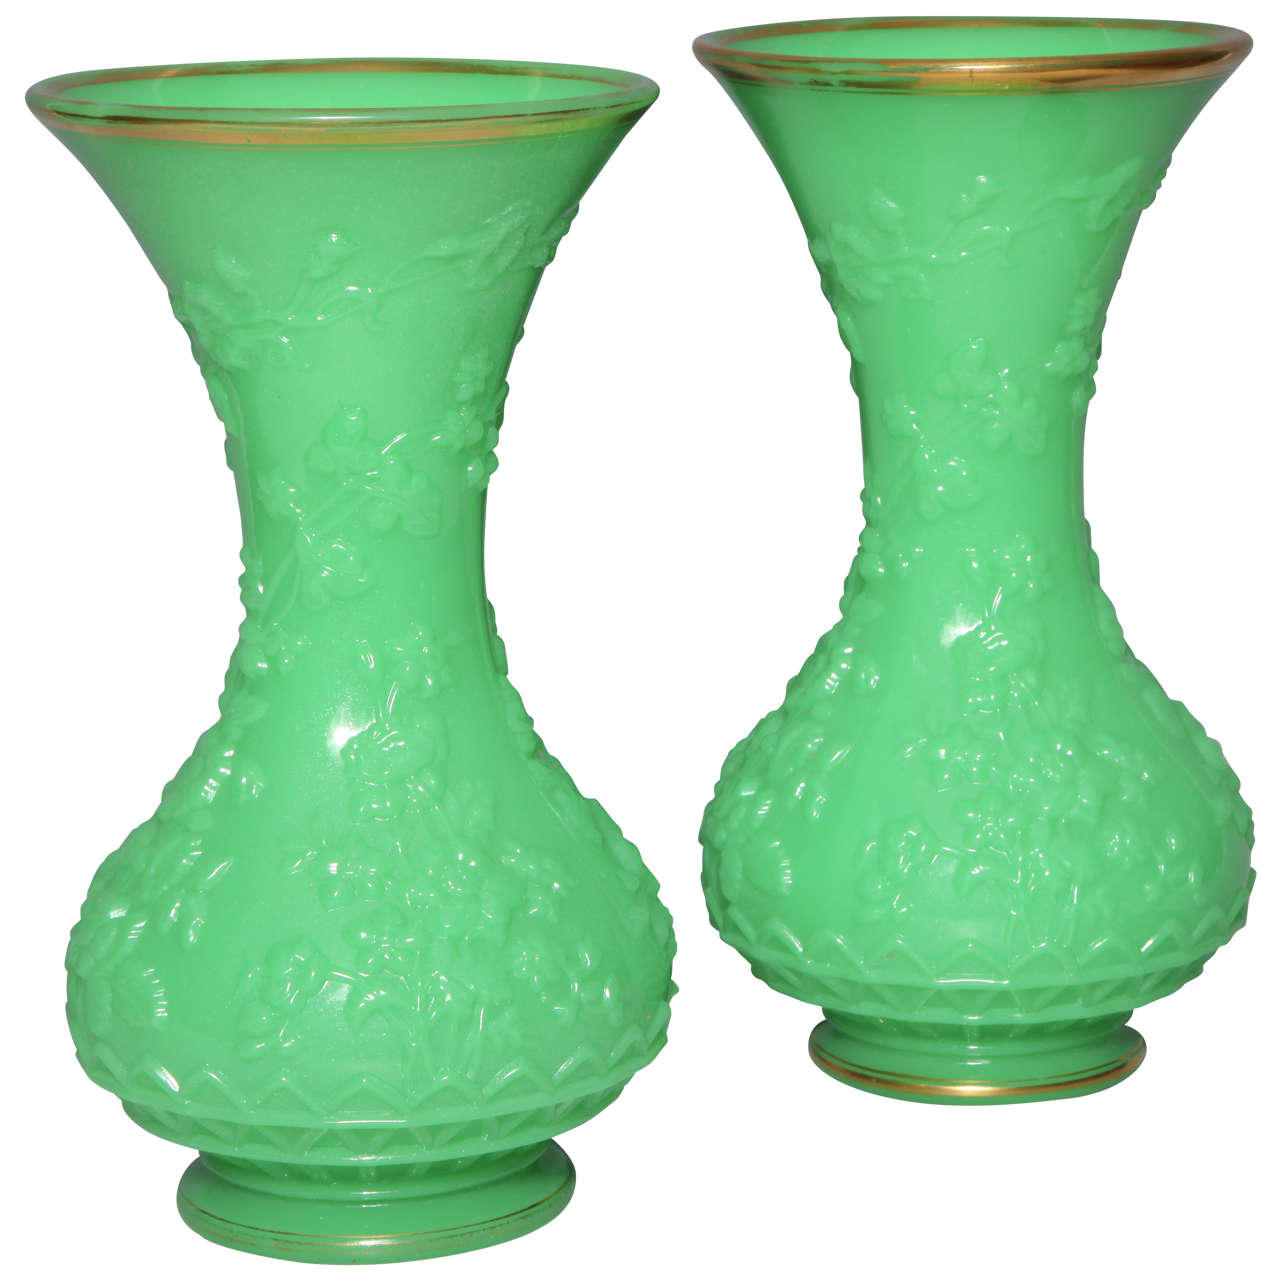 """Pair of French Baluster Shaped Opaline Glass Vases attributed to """"Baccarat"""" For Sale"""